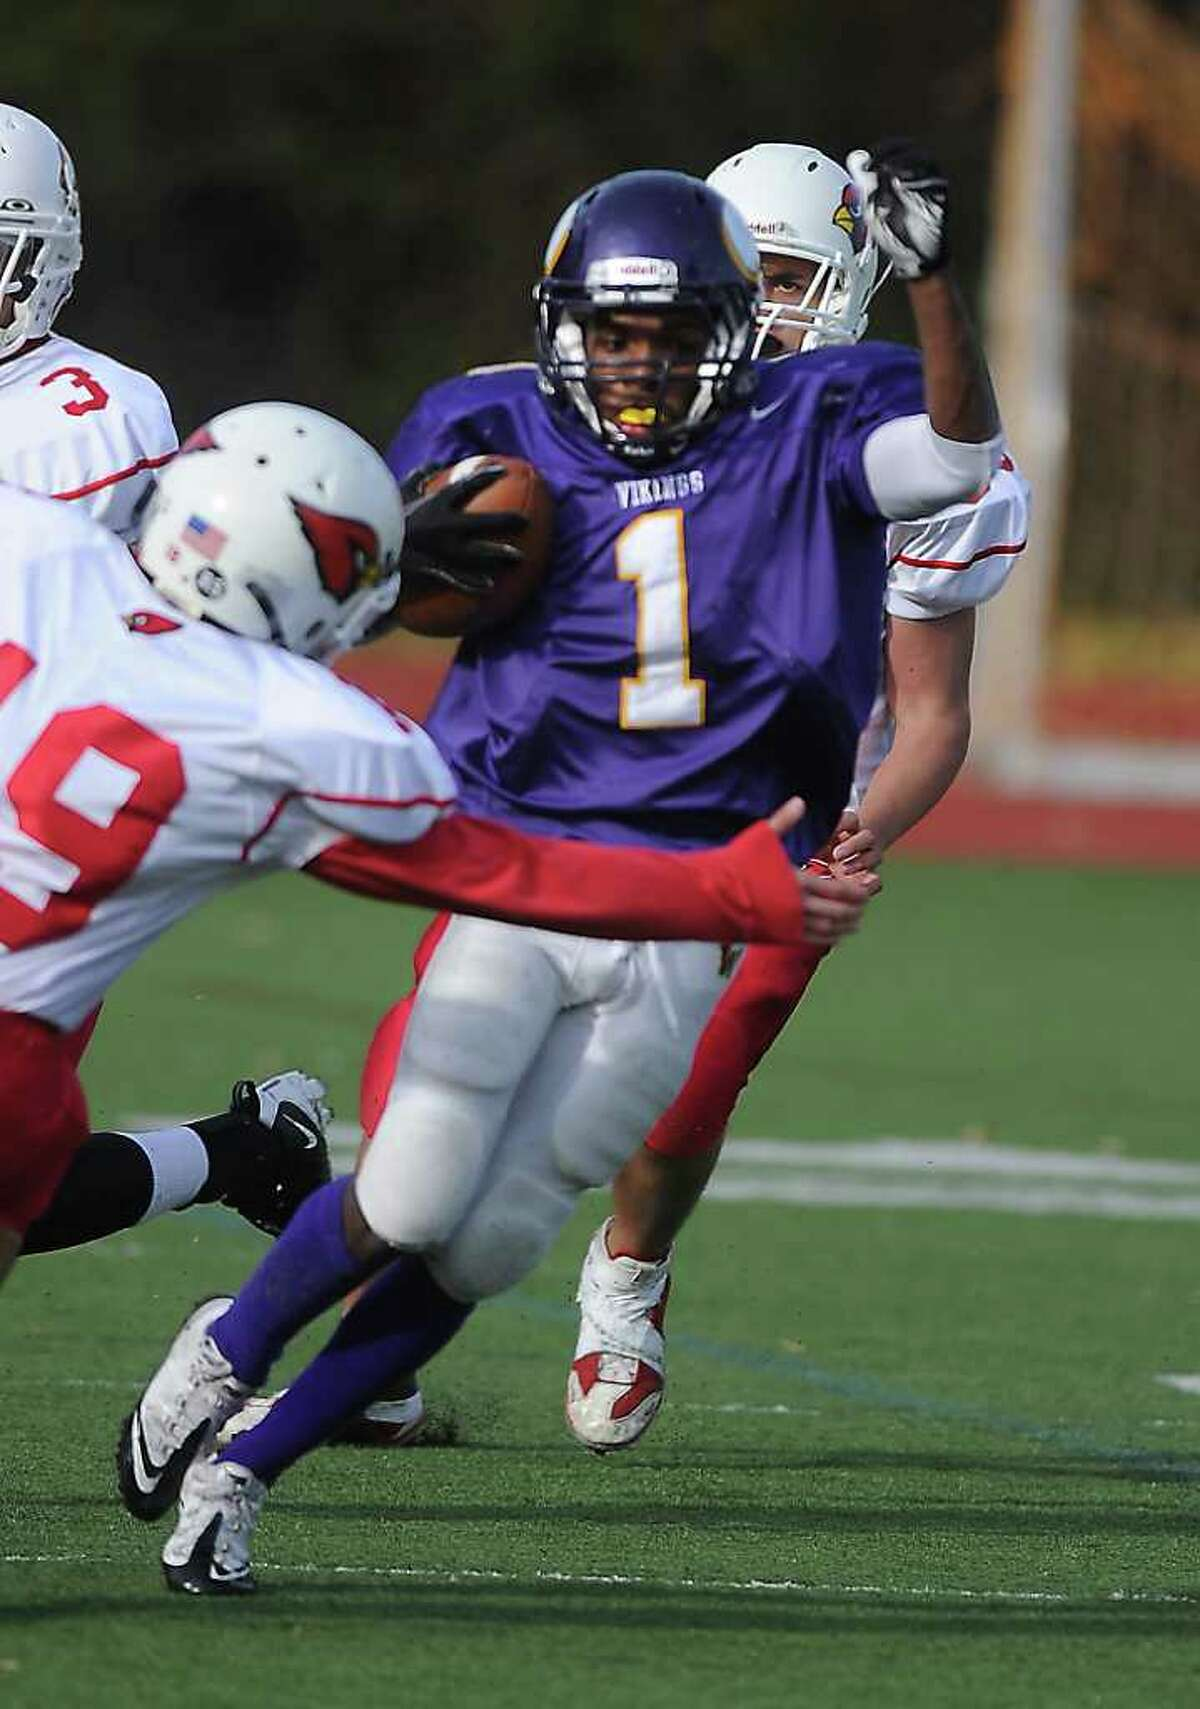 Westhill High School's Akai Jackson runs the ball against Greenwich High School in football action in Stamford, Conn. on Saturday October 30, 2010.